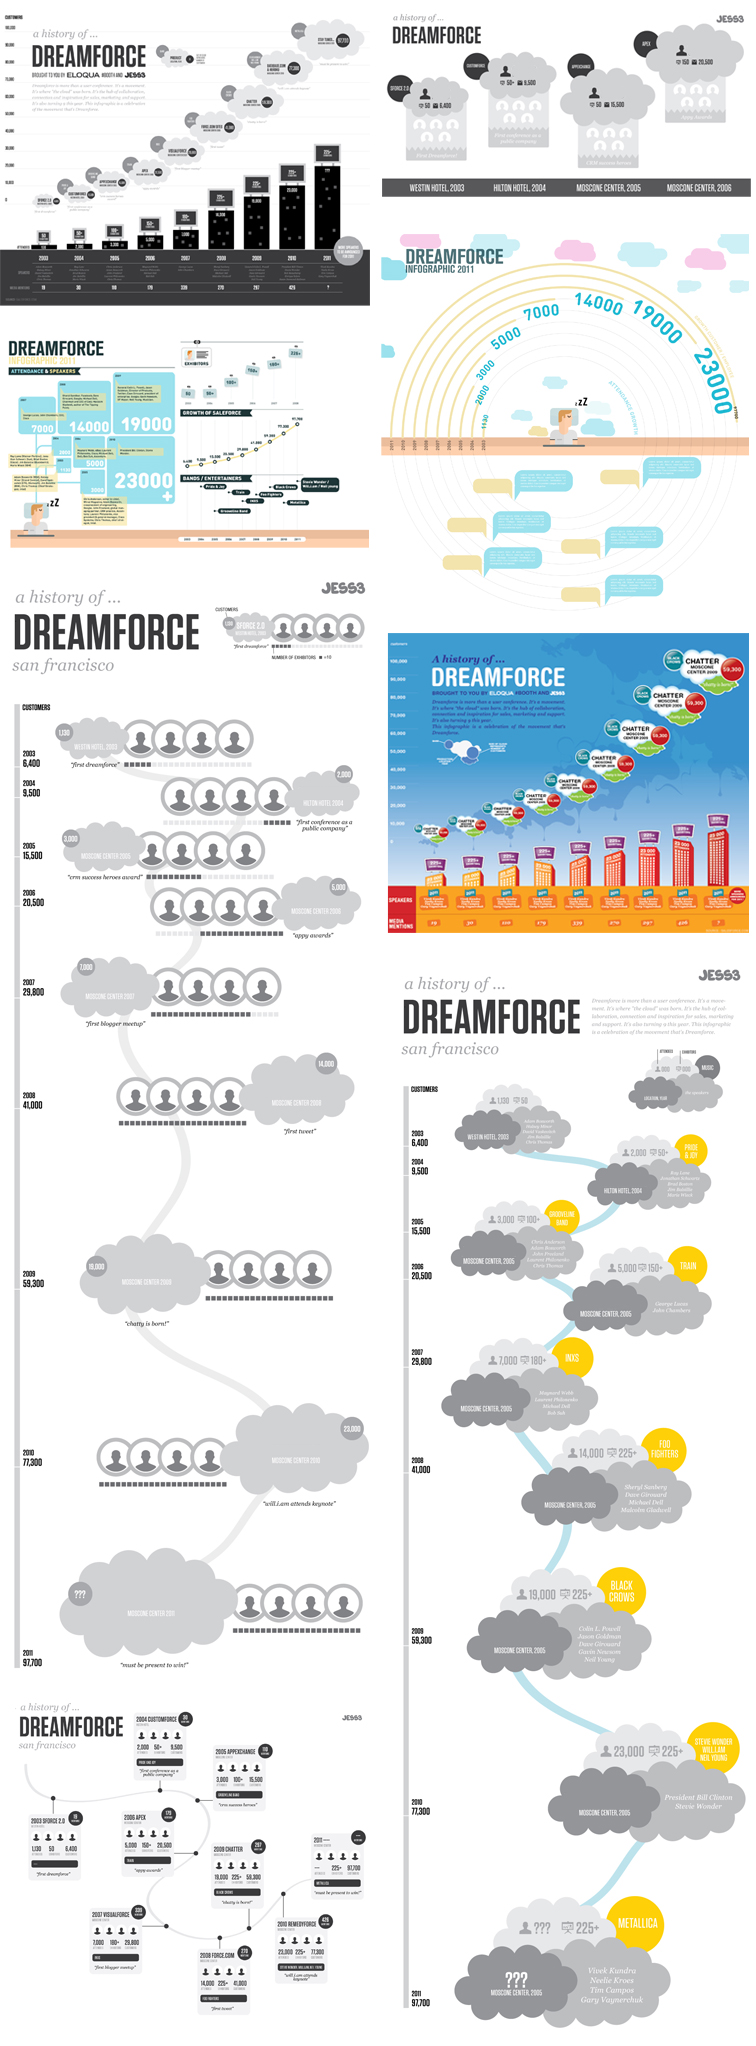 History of Dreamforce Infographic 1396